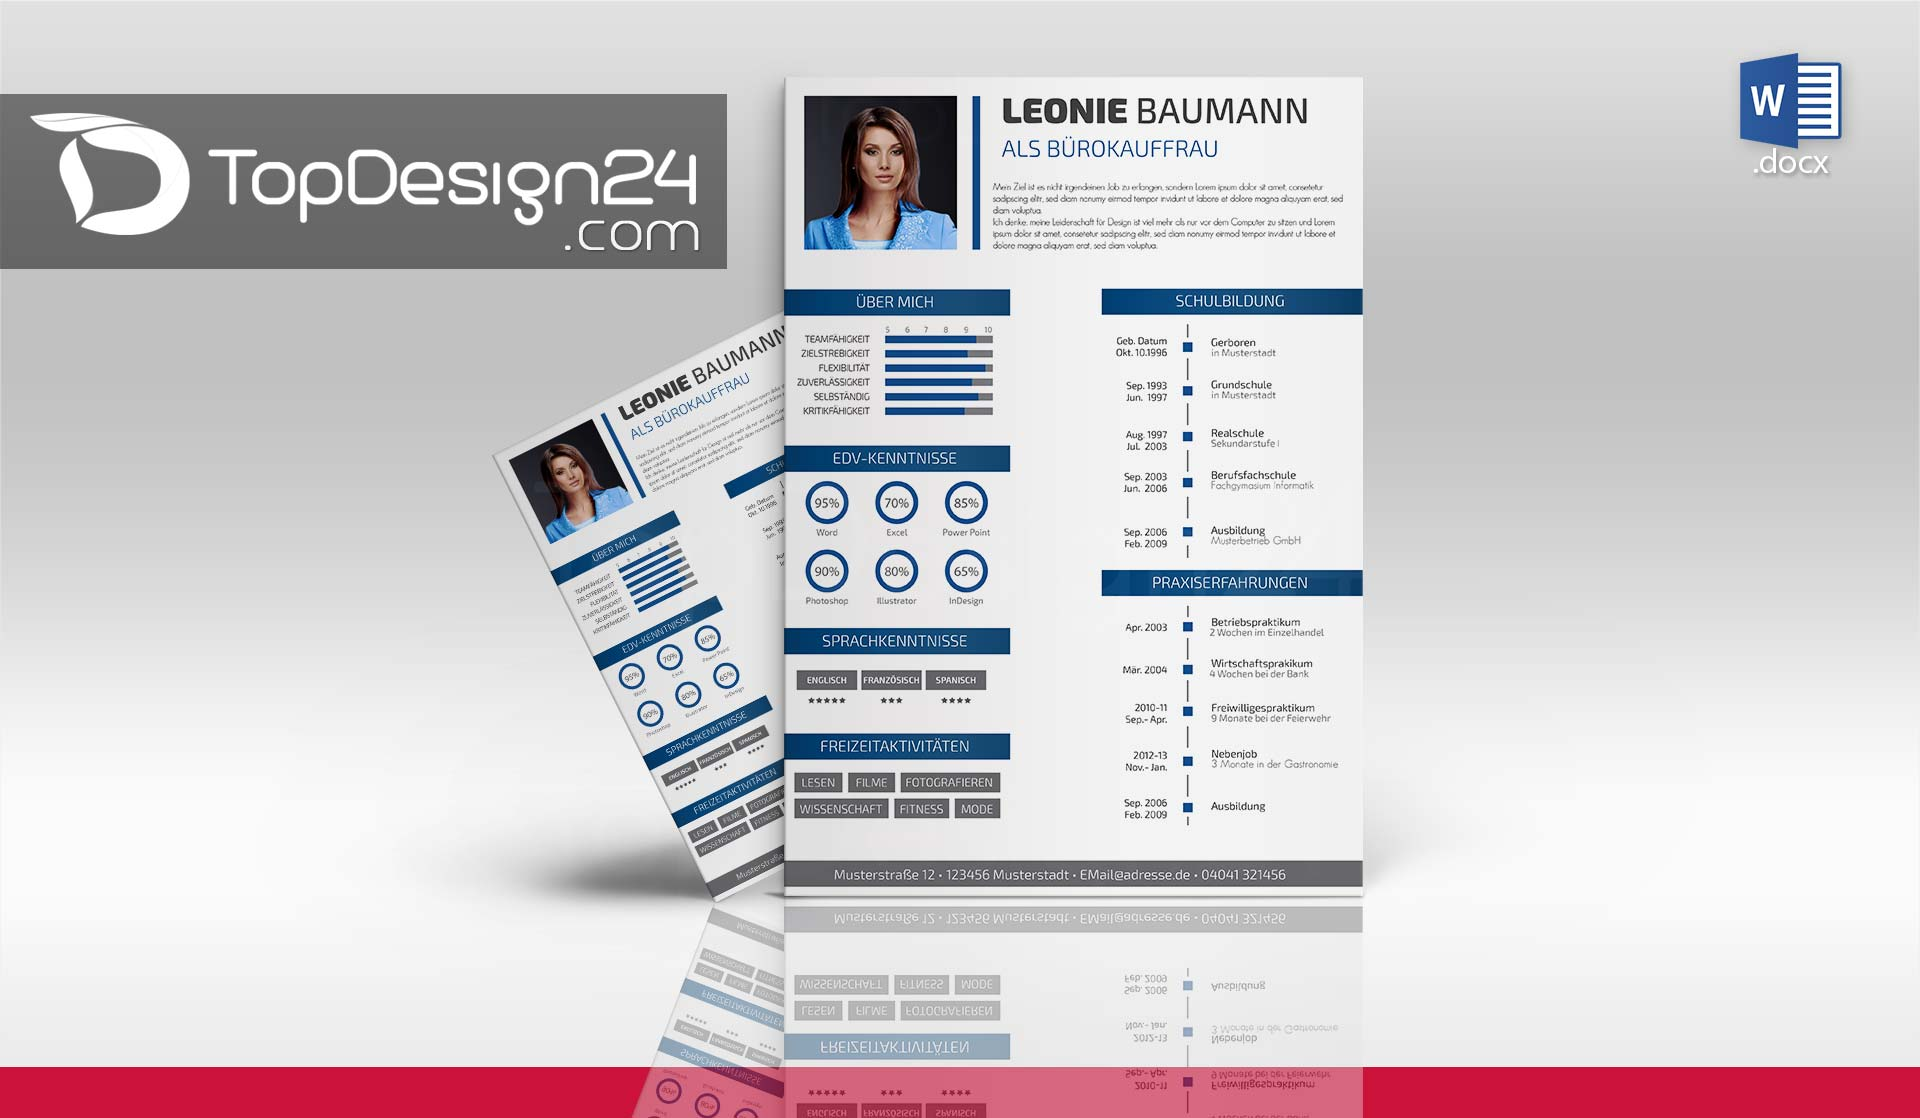 Bewerbung design word topdesign24 bewerbungsvorlagen for Make a blueprint free online